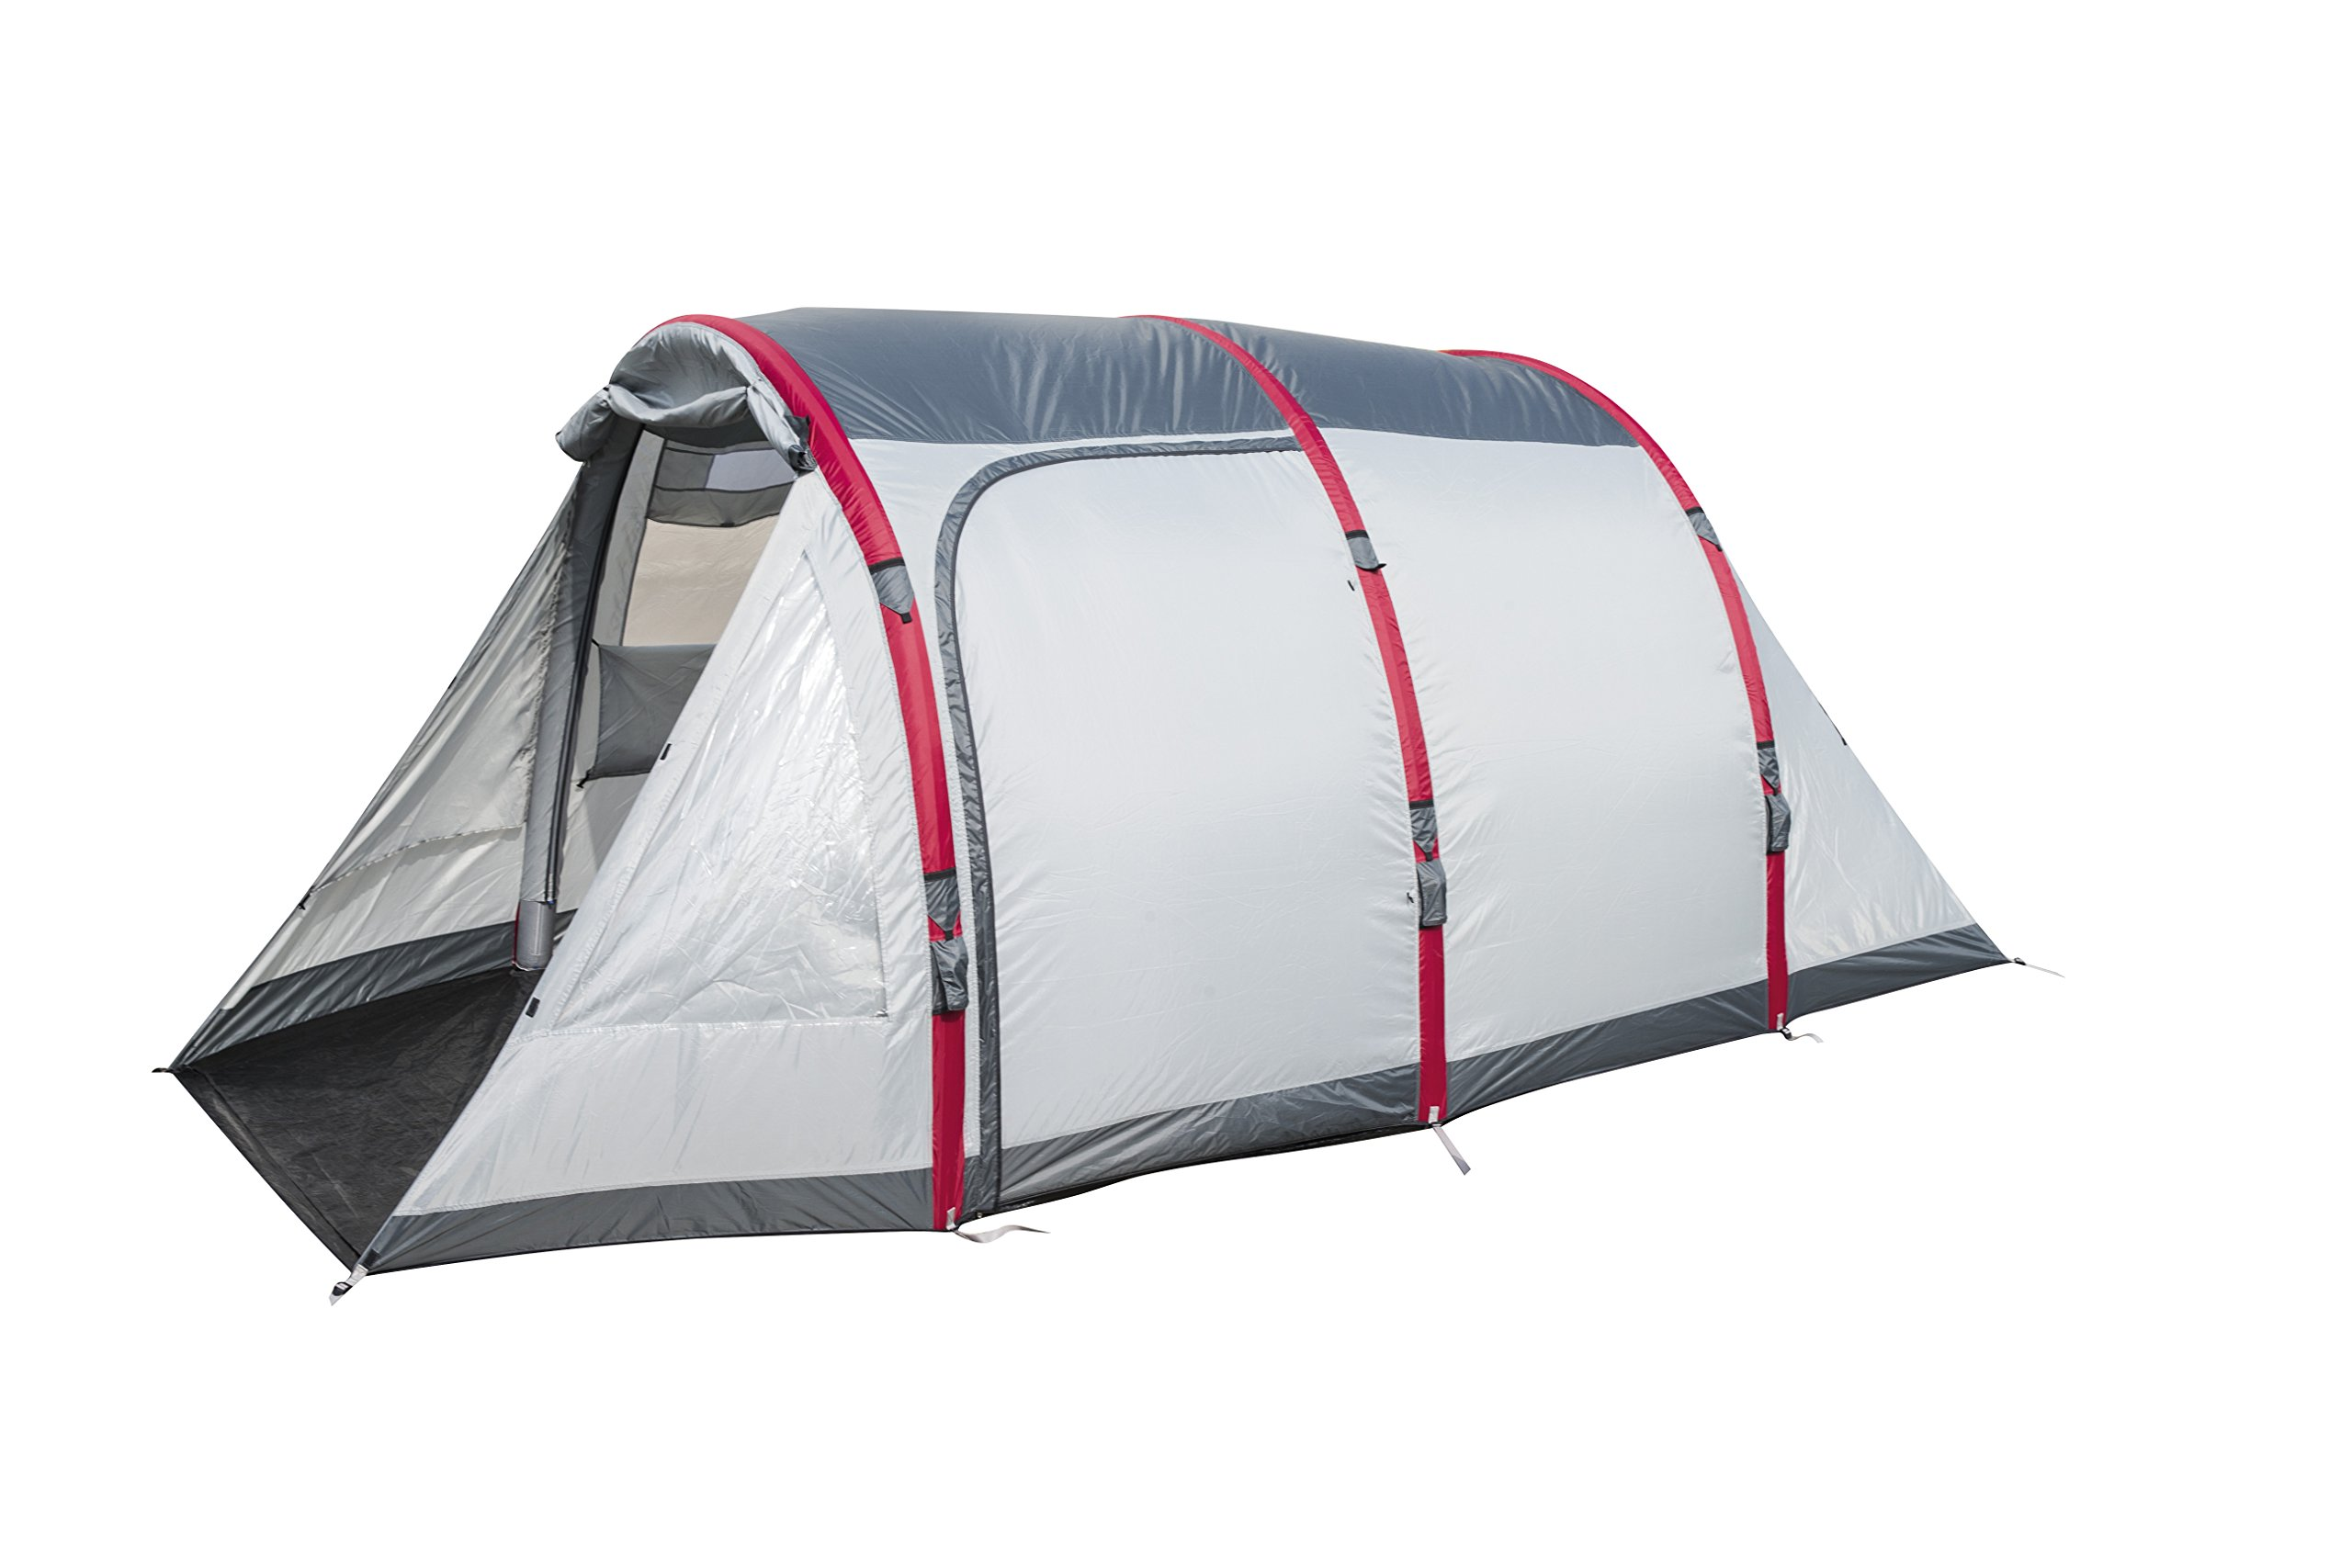 Pavillo Unisex's BW68077 Sierra Ridge Air Inflatable 4-Man Tunnel Tent Measures L4.85m x 2.79m x H2m, Grey, 4 Person 7